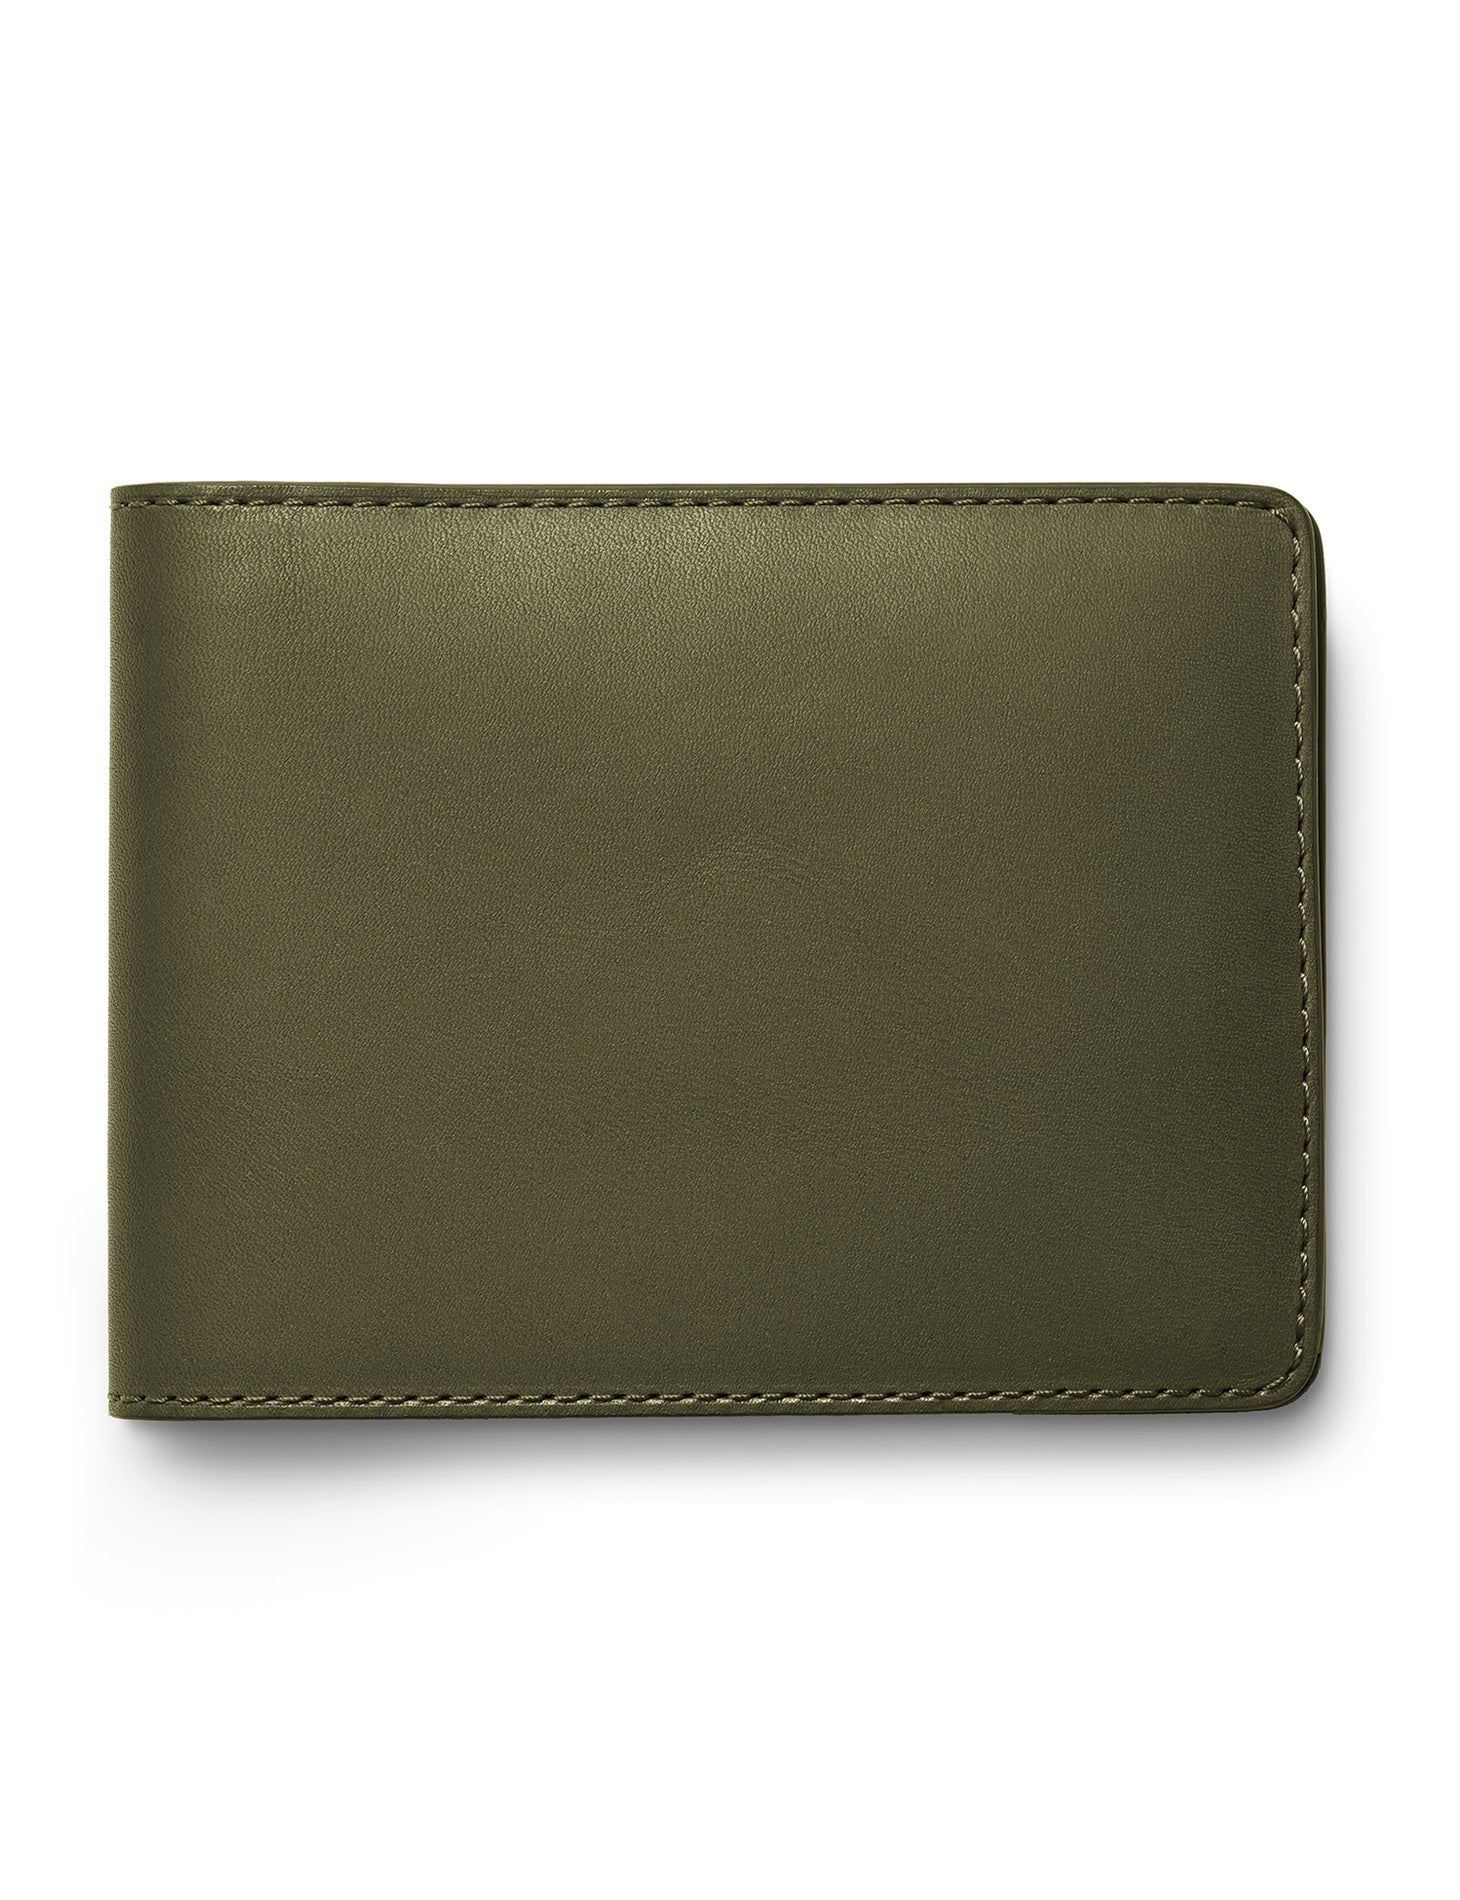 David August Luxury Genuine Vintage Calfskin Leather Bi-Fold Wallet in Olive Green